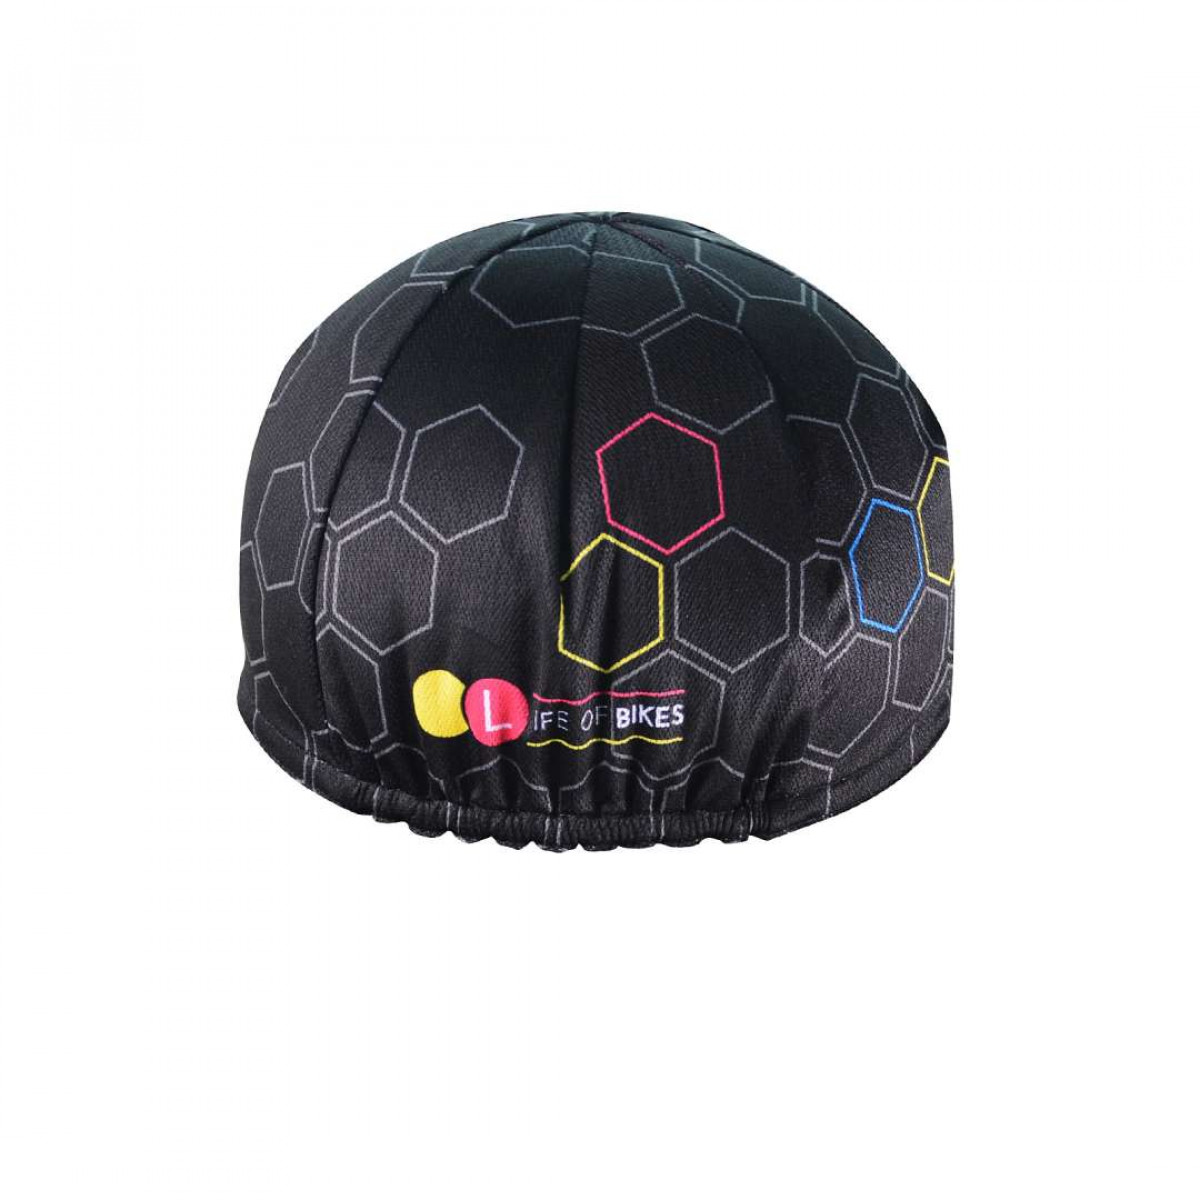 LifeofBikes ACC0011 Rear WEB Cycling Cap